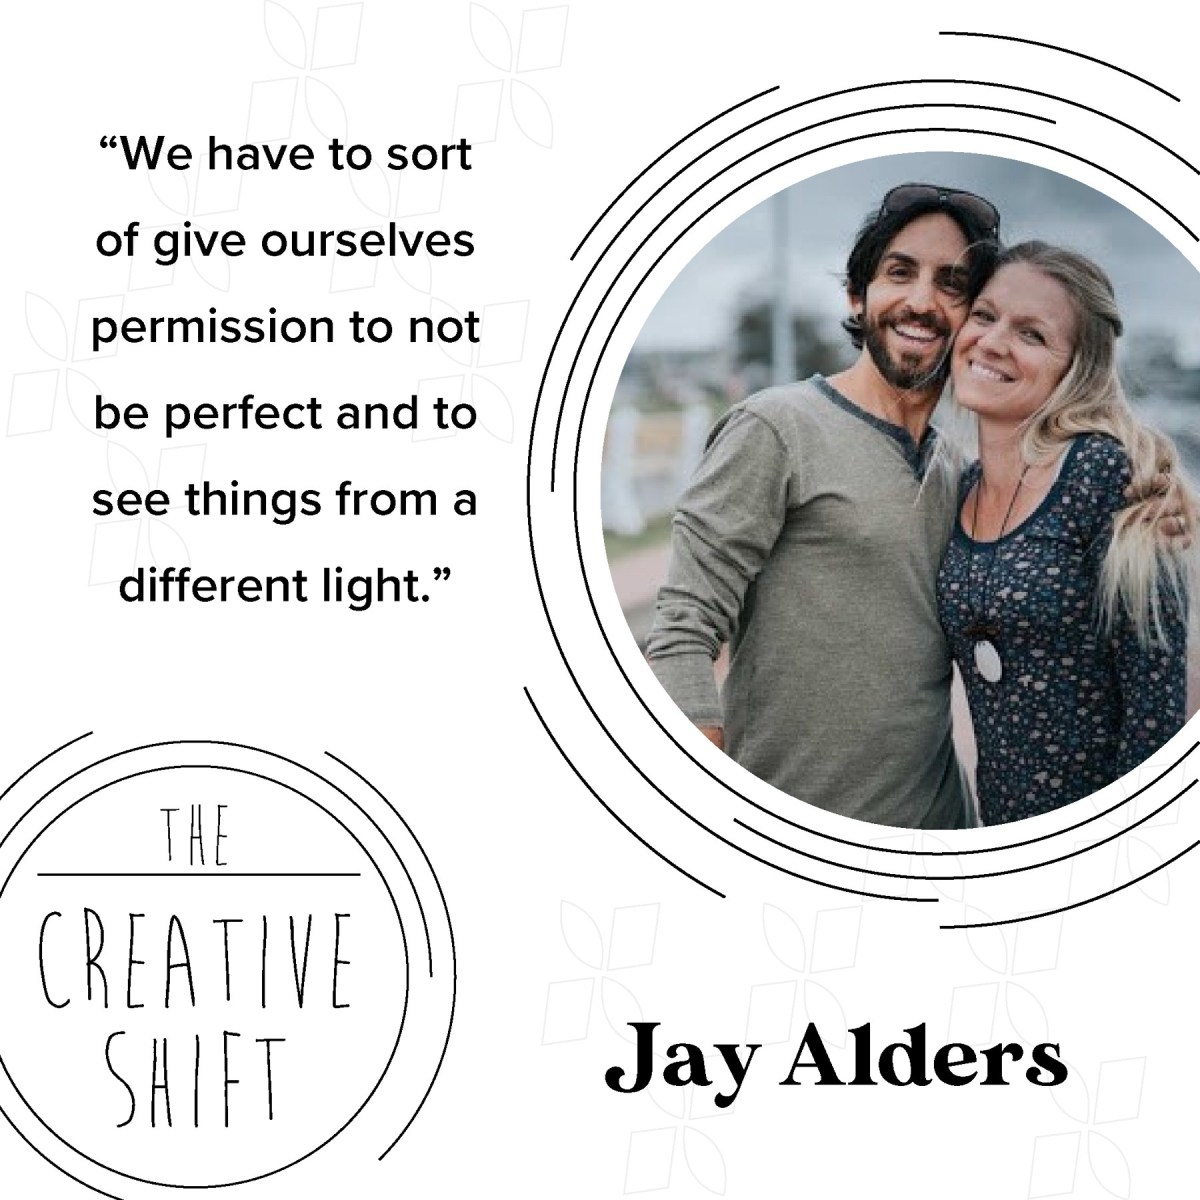 interview during lockdown with artist Jay Alders